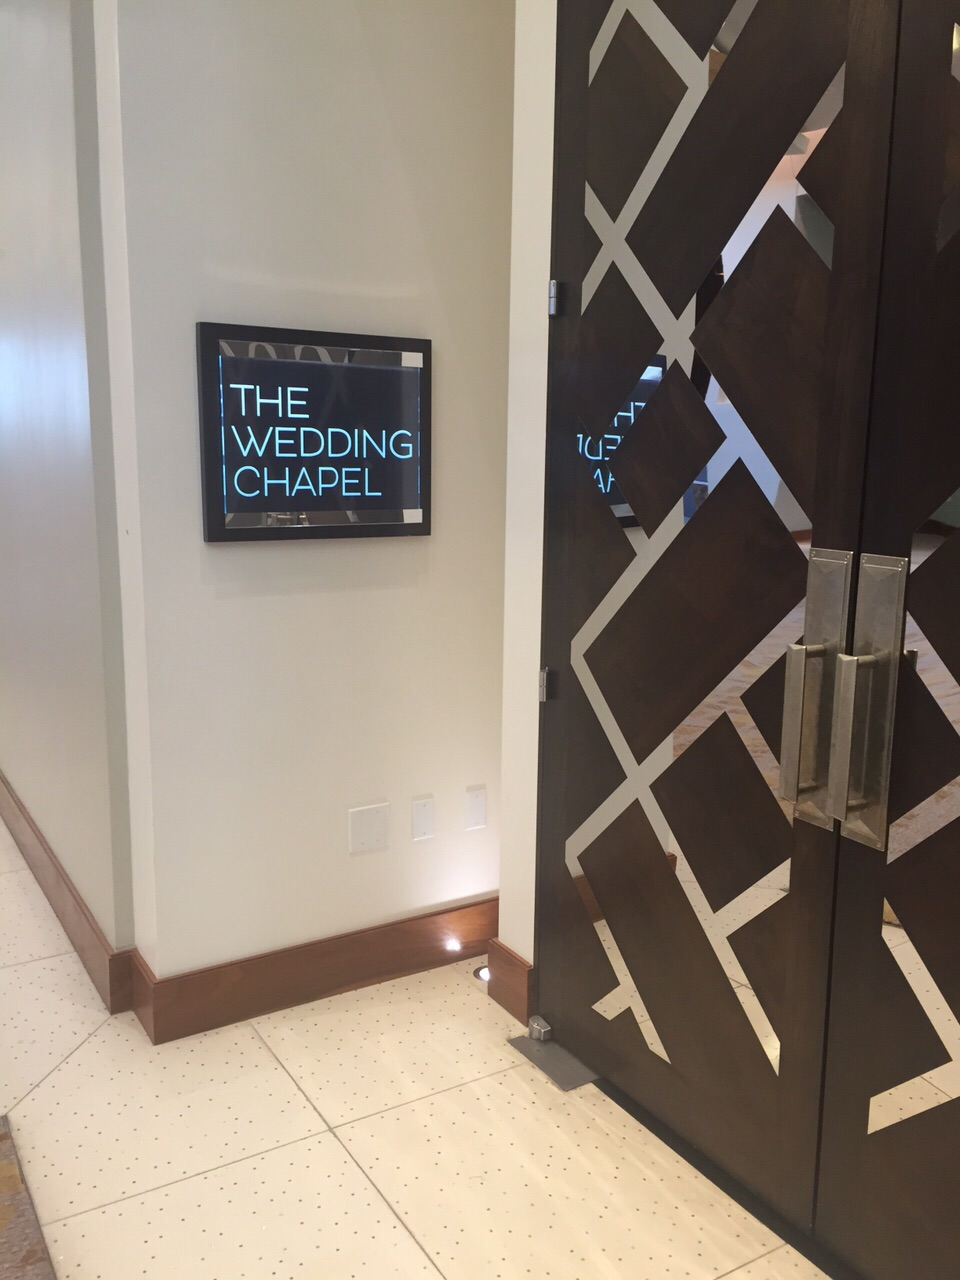 Chances you'd be married by night fall with a chapel in the hotel basement